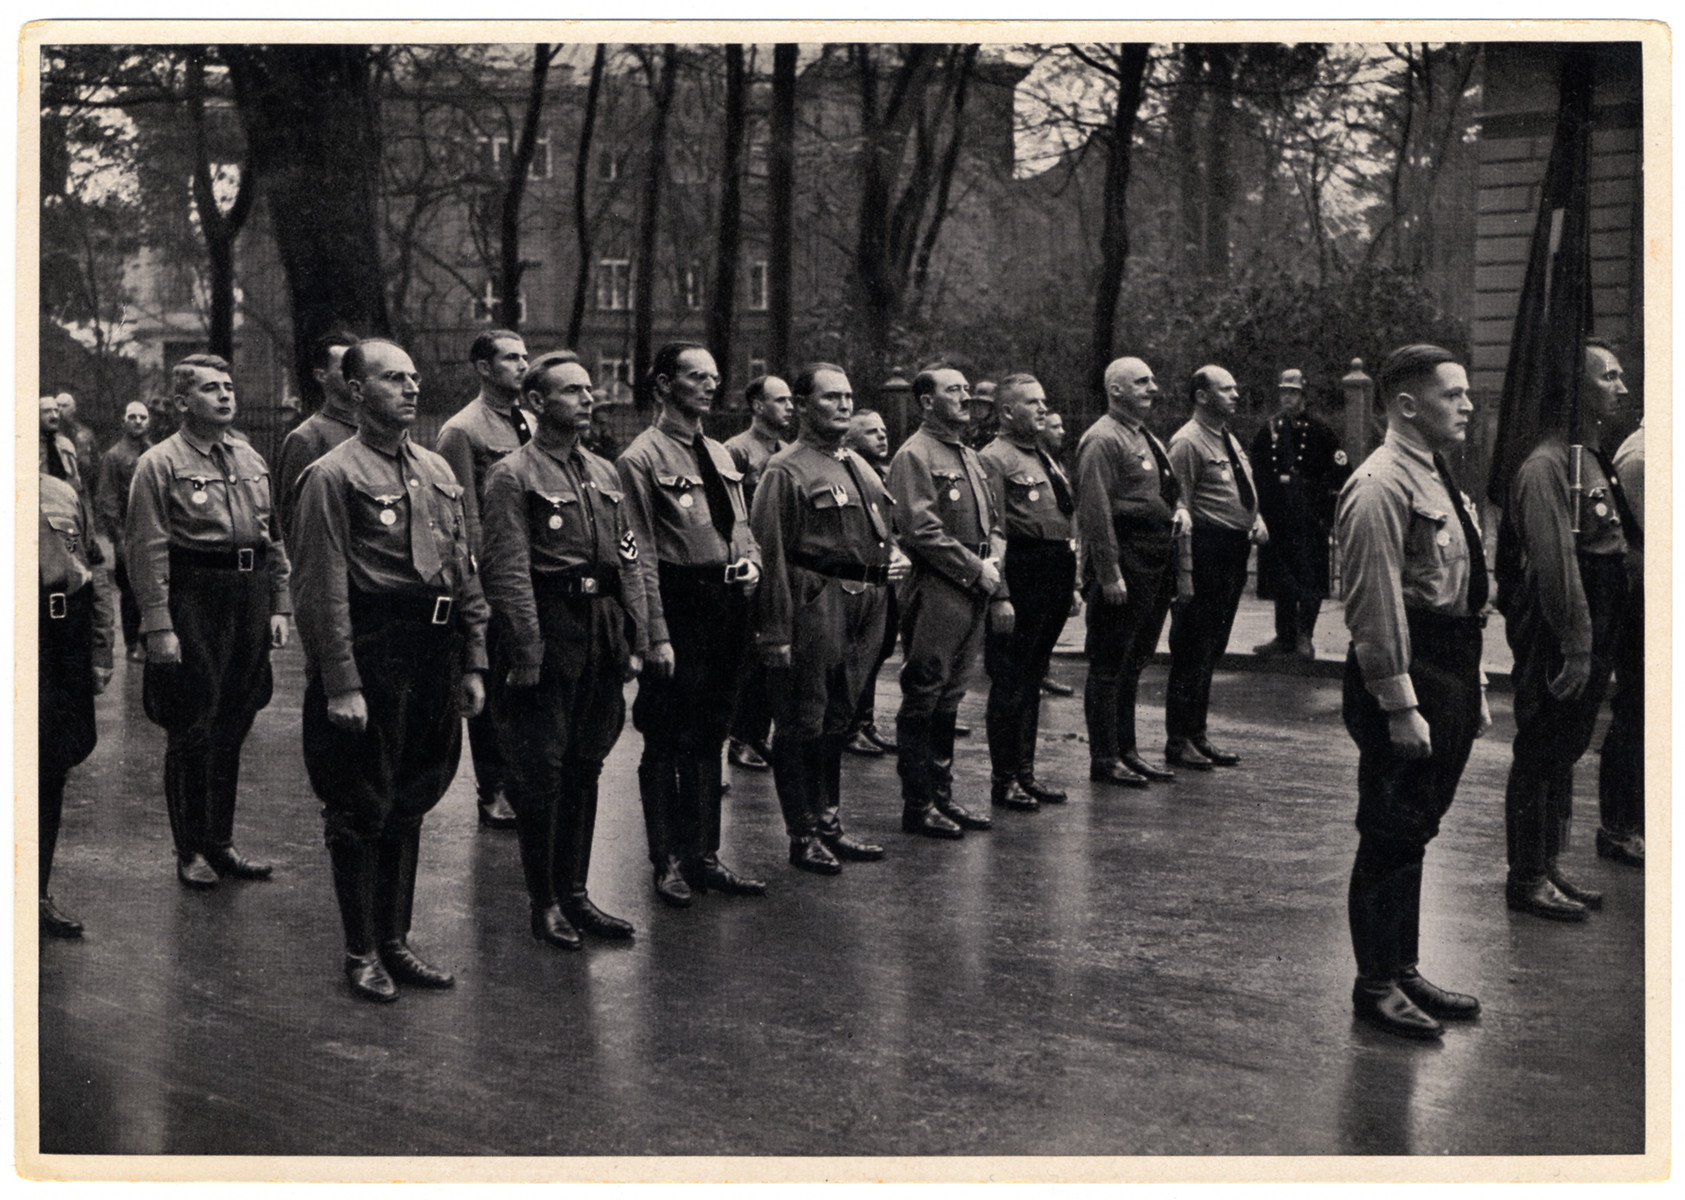 Nazi leaders gather in formation.  Among those pictured are Adolf Hitler and Hermann Goering.